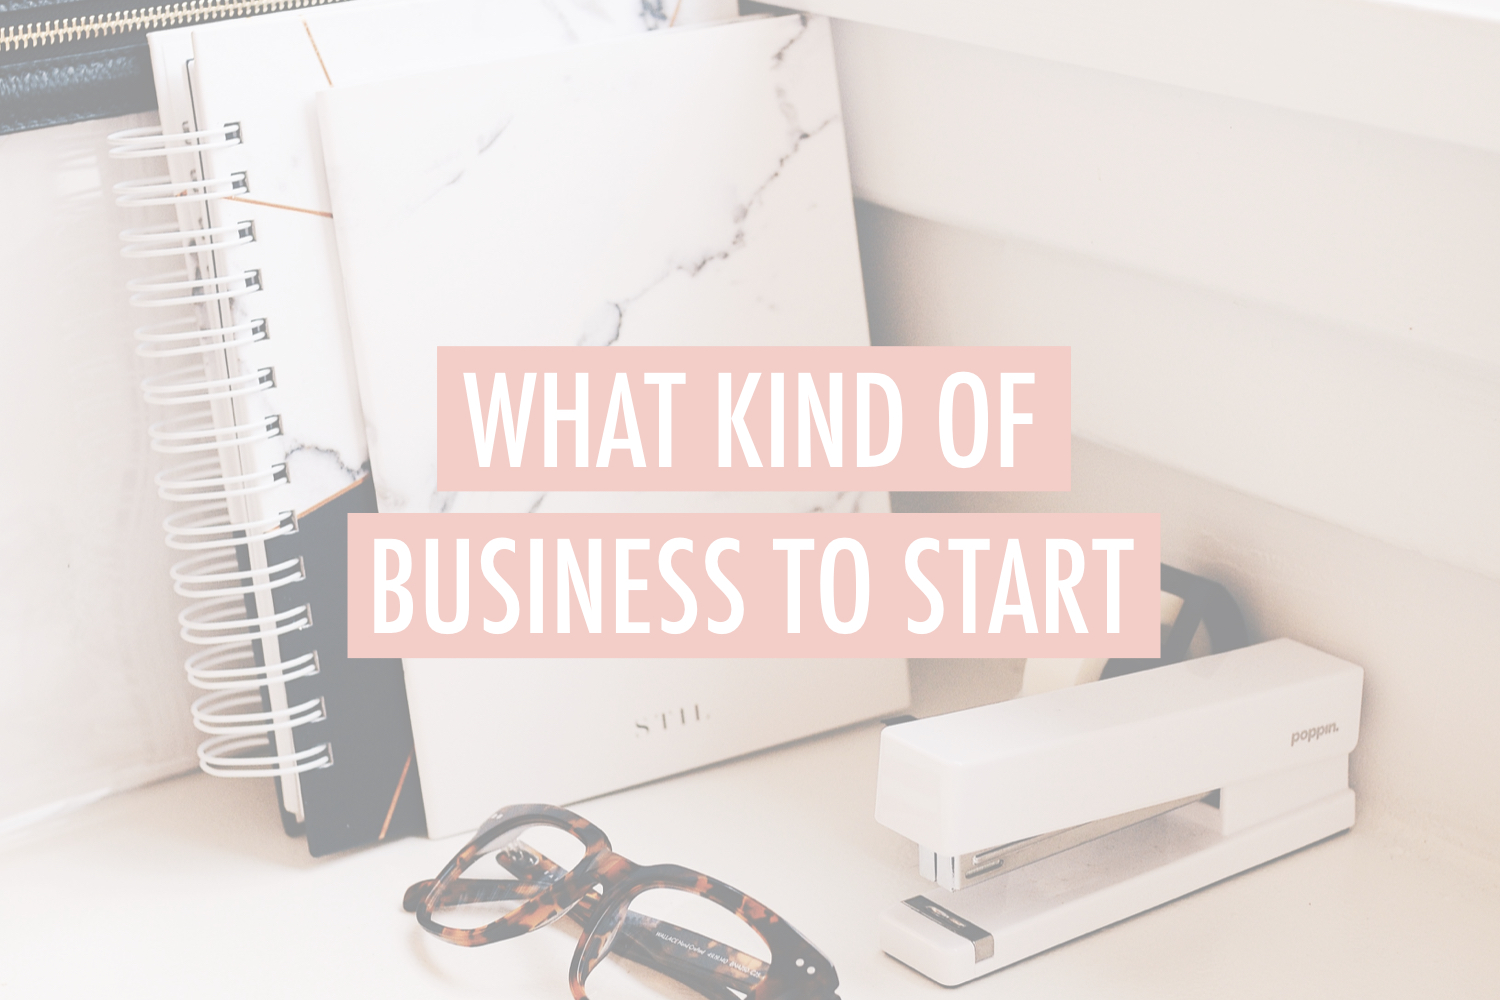 type of business to start  - stacy kessler